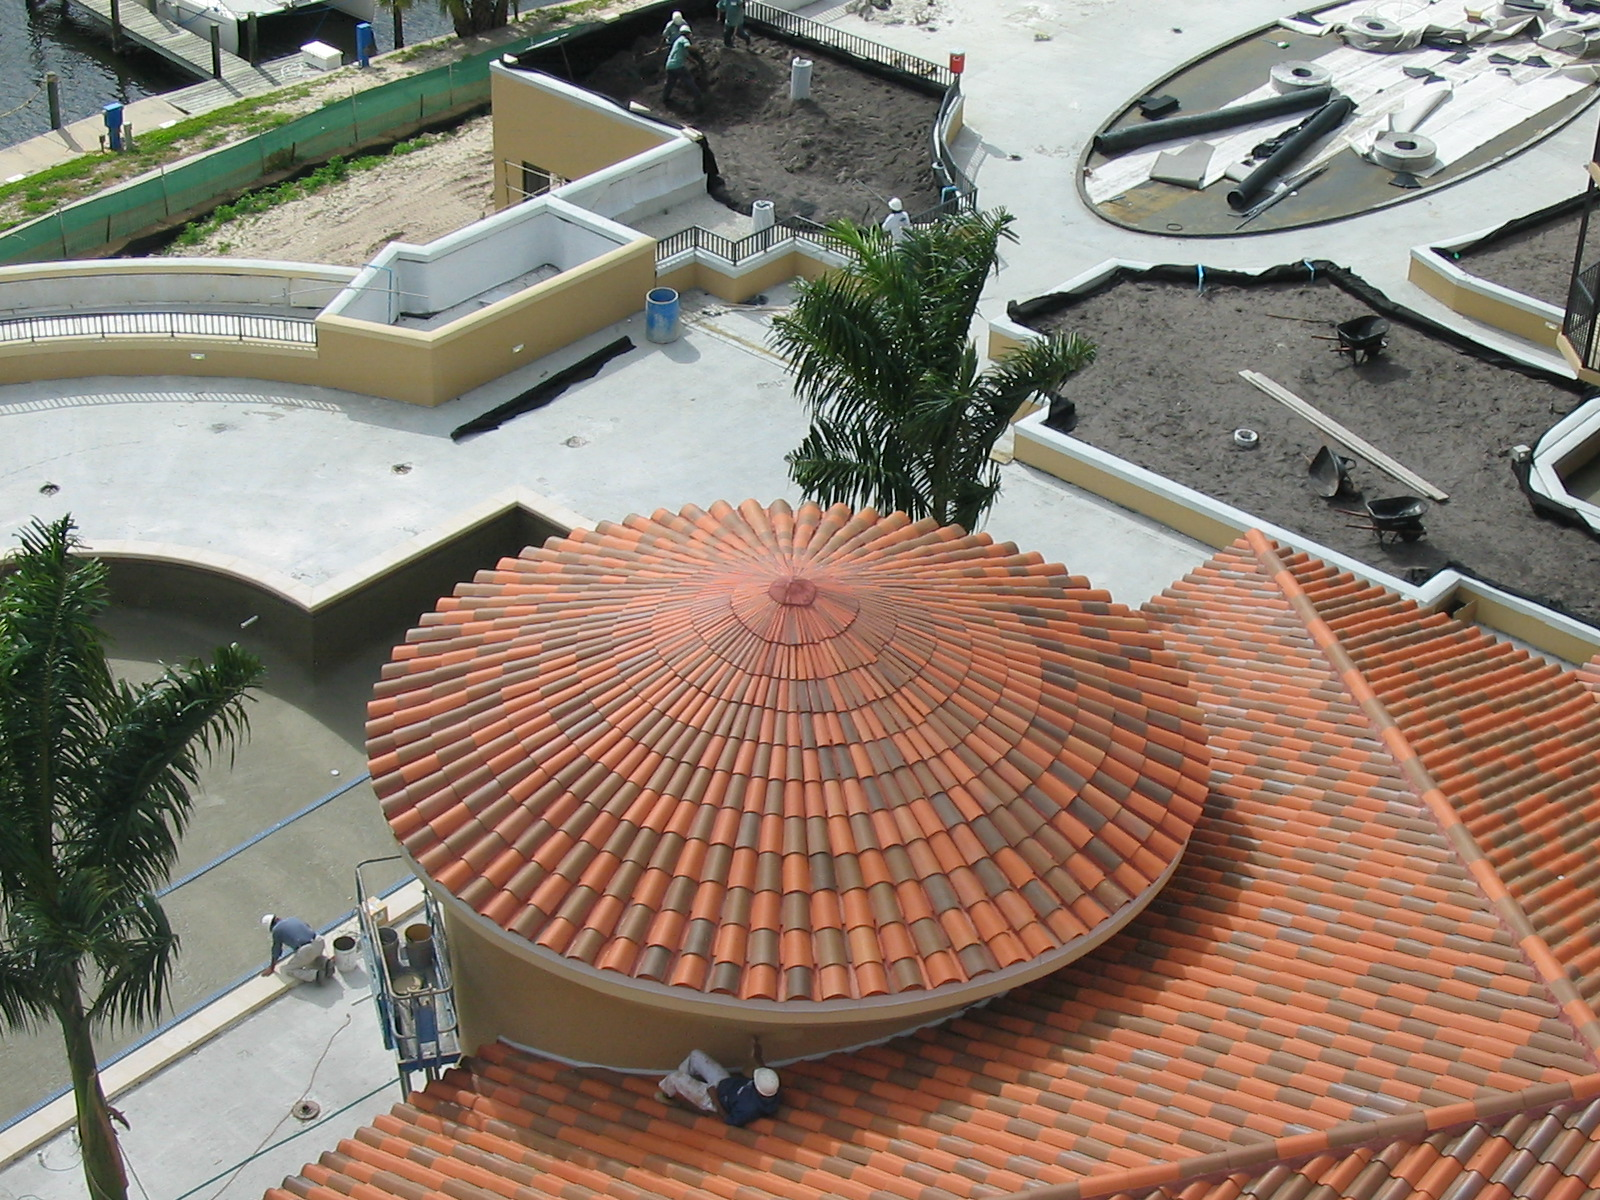 1 florida roofing warranties they ve got you covered or do they roof blog - Roofs reason why you need a permanent one ...